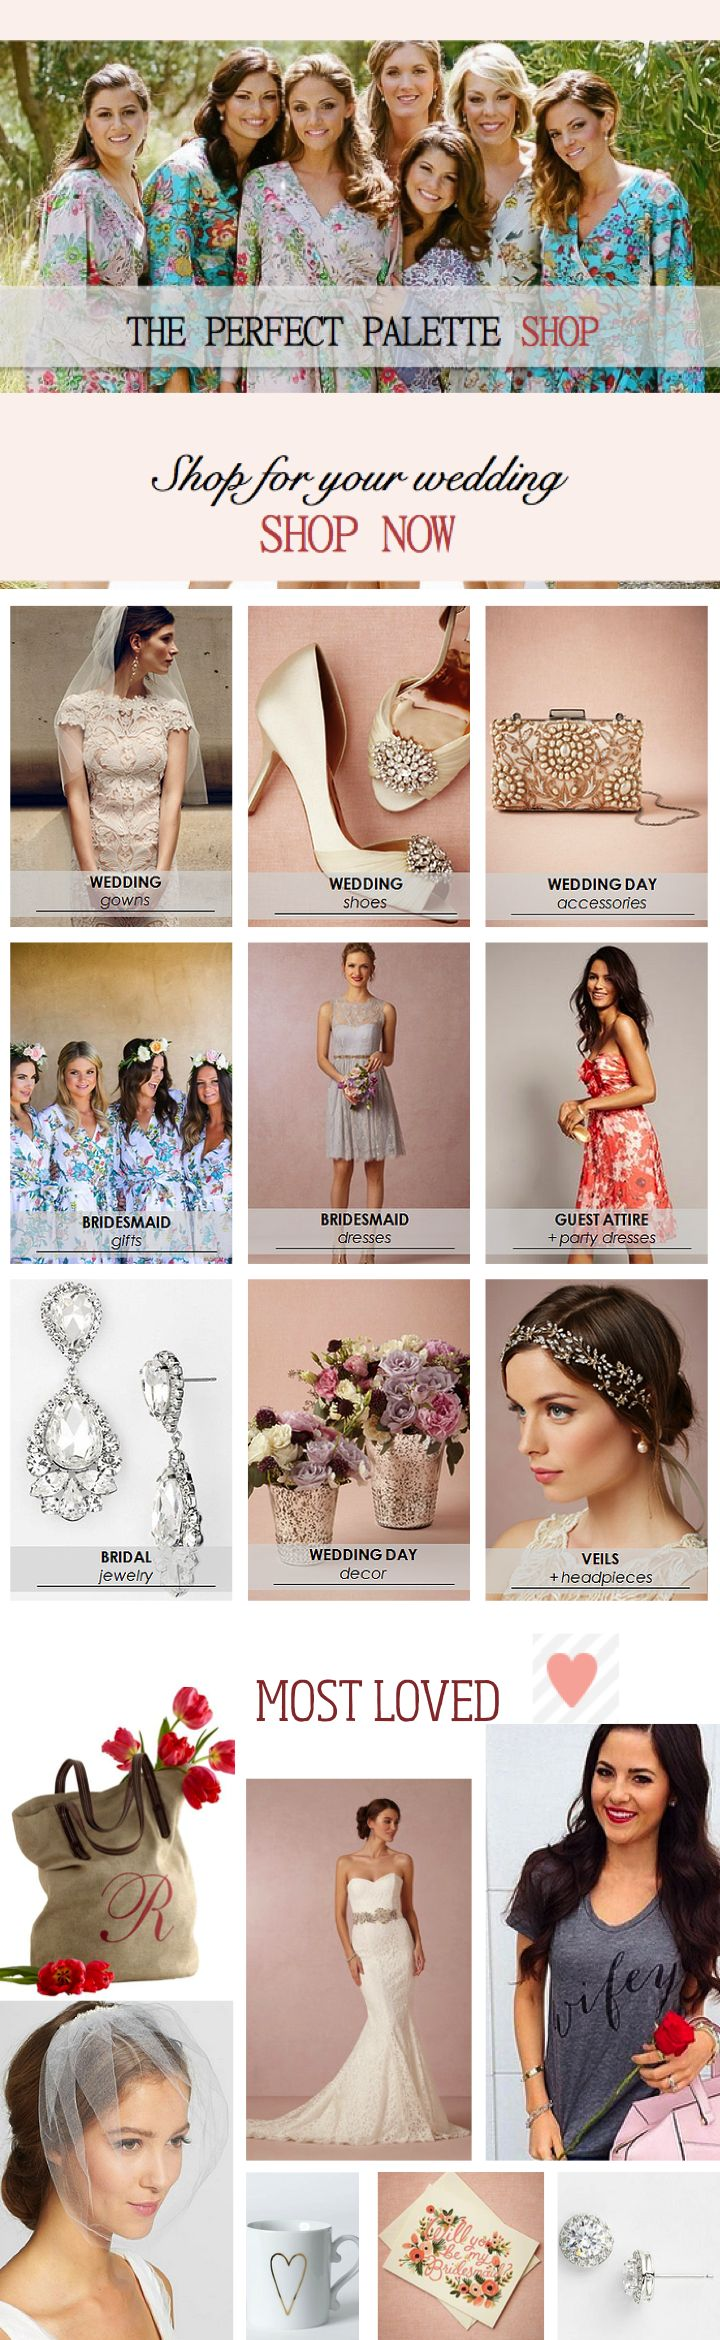 Brand NEW shop on The Perfect Palette! In addition to bridal fashion and bridesmaid gifts - Im also sharing my favorite picks for party decor, invitations, favors, and more. Shopping for your upcoming wedding or party has never been easier! Ive done all of the hard work for you! Shop with me at www.ThePerfectPaletteShop.com